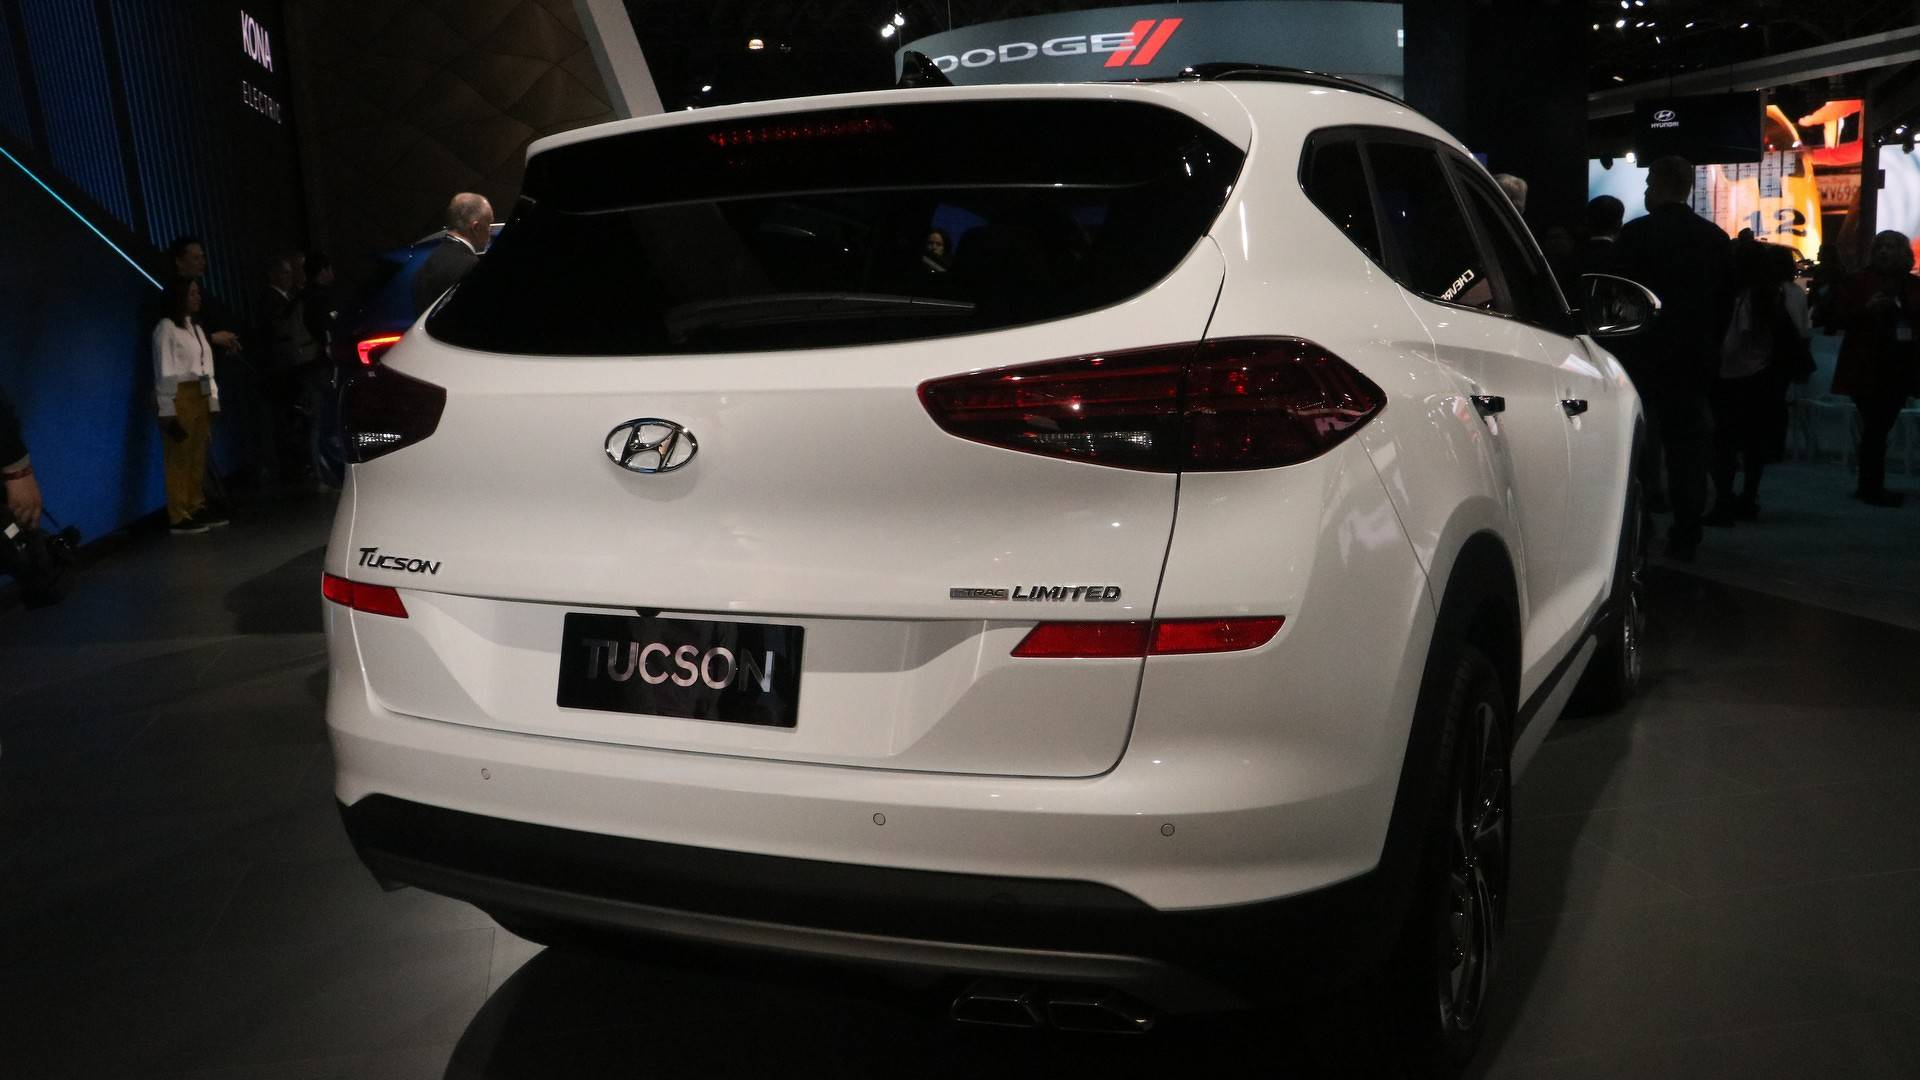 sale hyundai a car by at of noir tucson being tuscon in id en laval qc and located price chomedey this displays par is system vehicle sold the